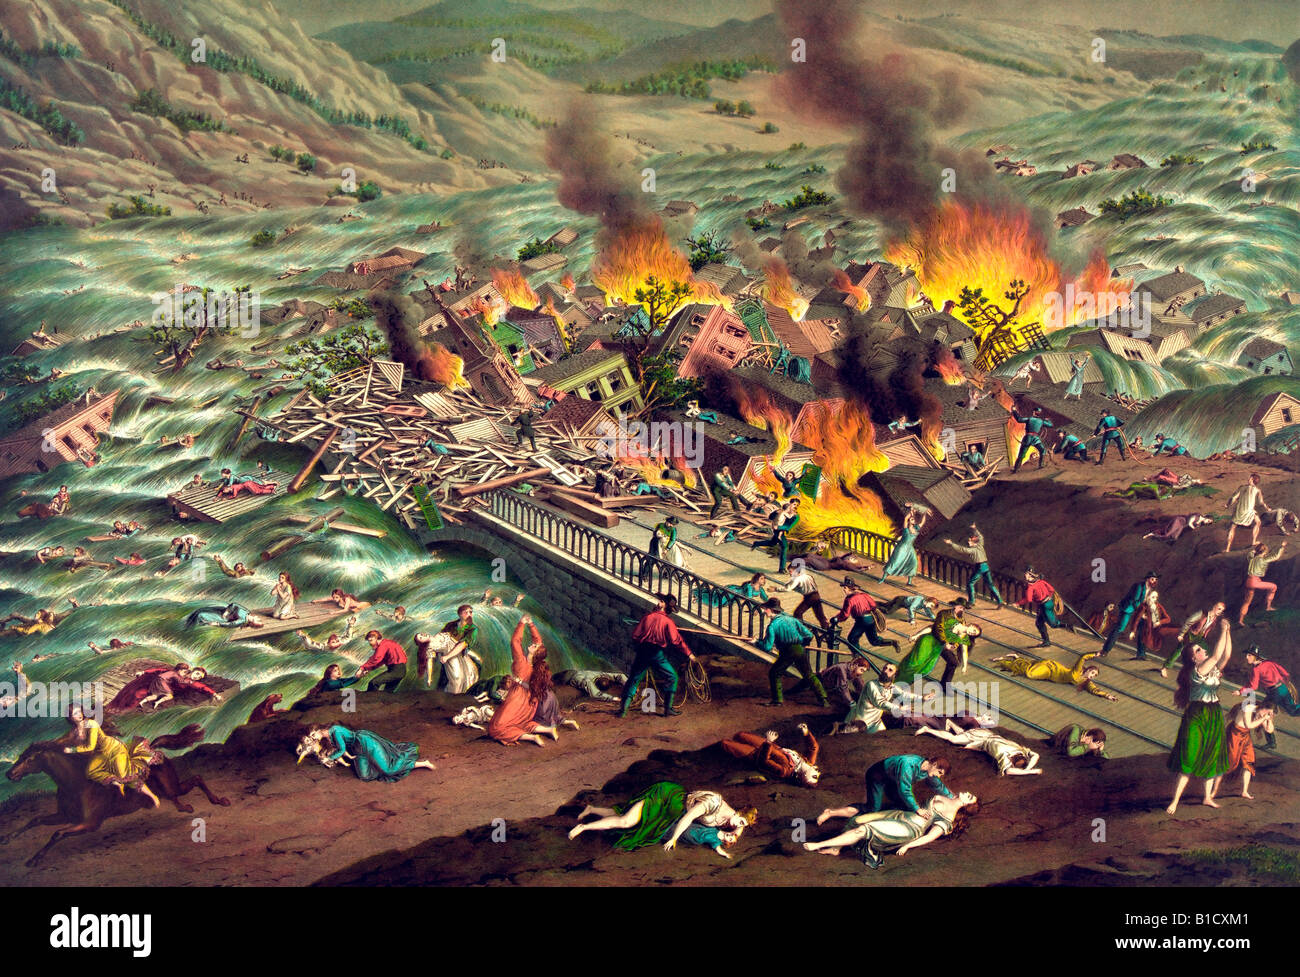 Johnstown Flood - Great Conemaugh-Valley disaster - Stock Image